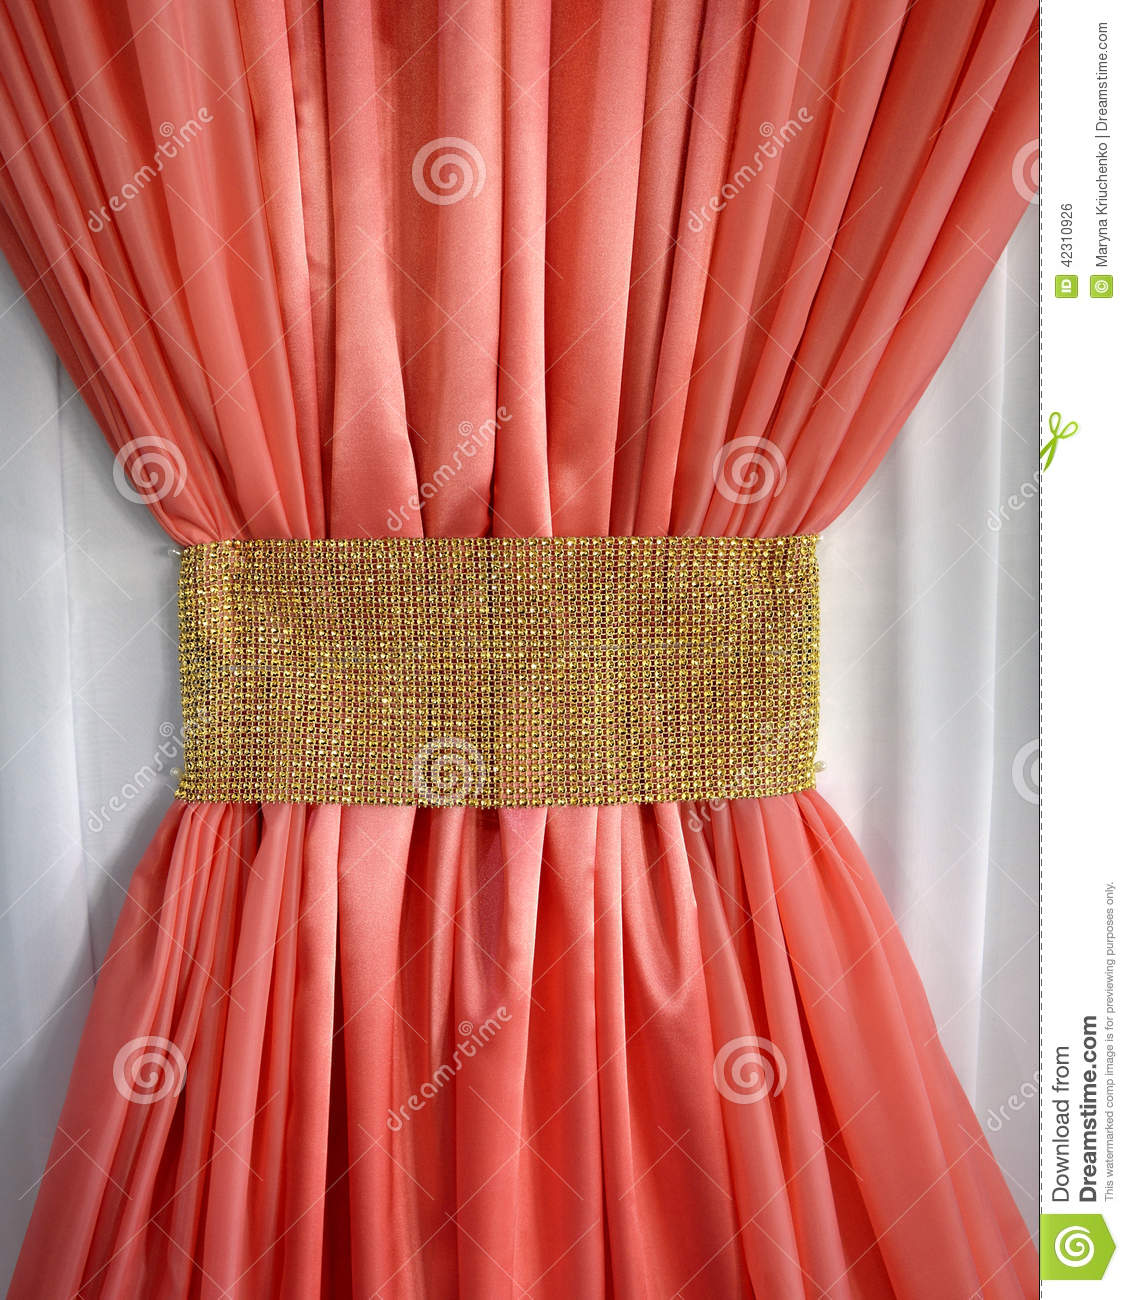 coral curtain ruffled gold belt stock photo - image: 42310926